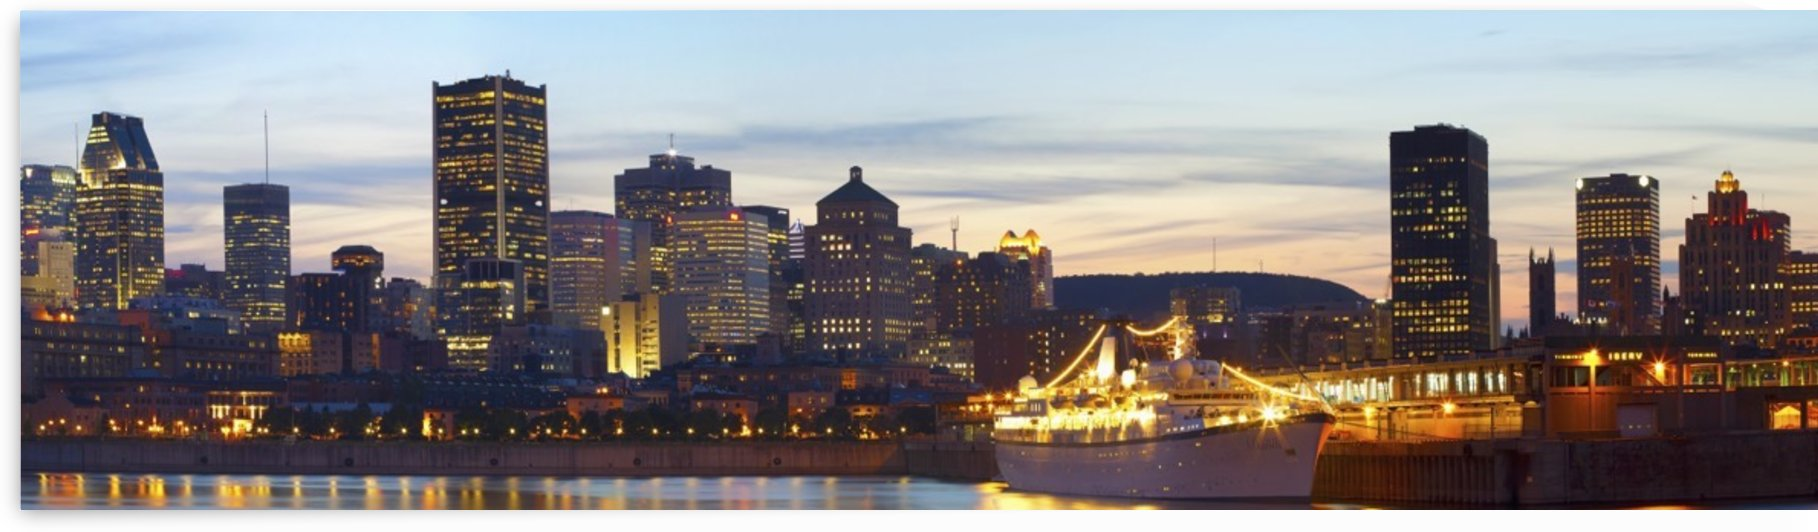 Montreal Skyline At Dusk; Montreal, Quebec, Canada by PacificStock